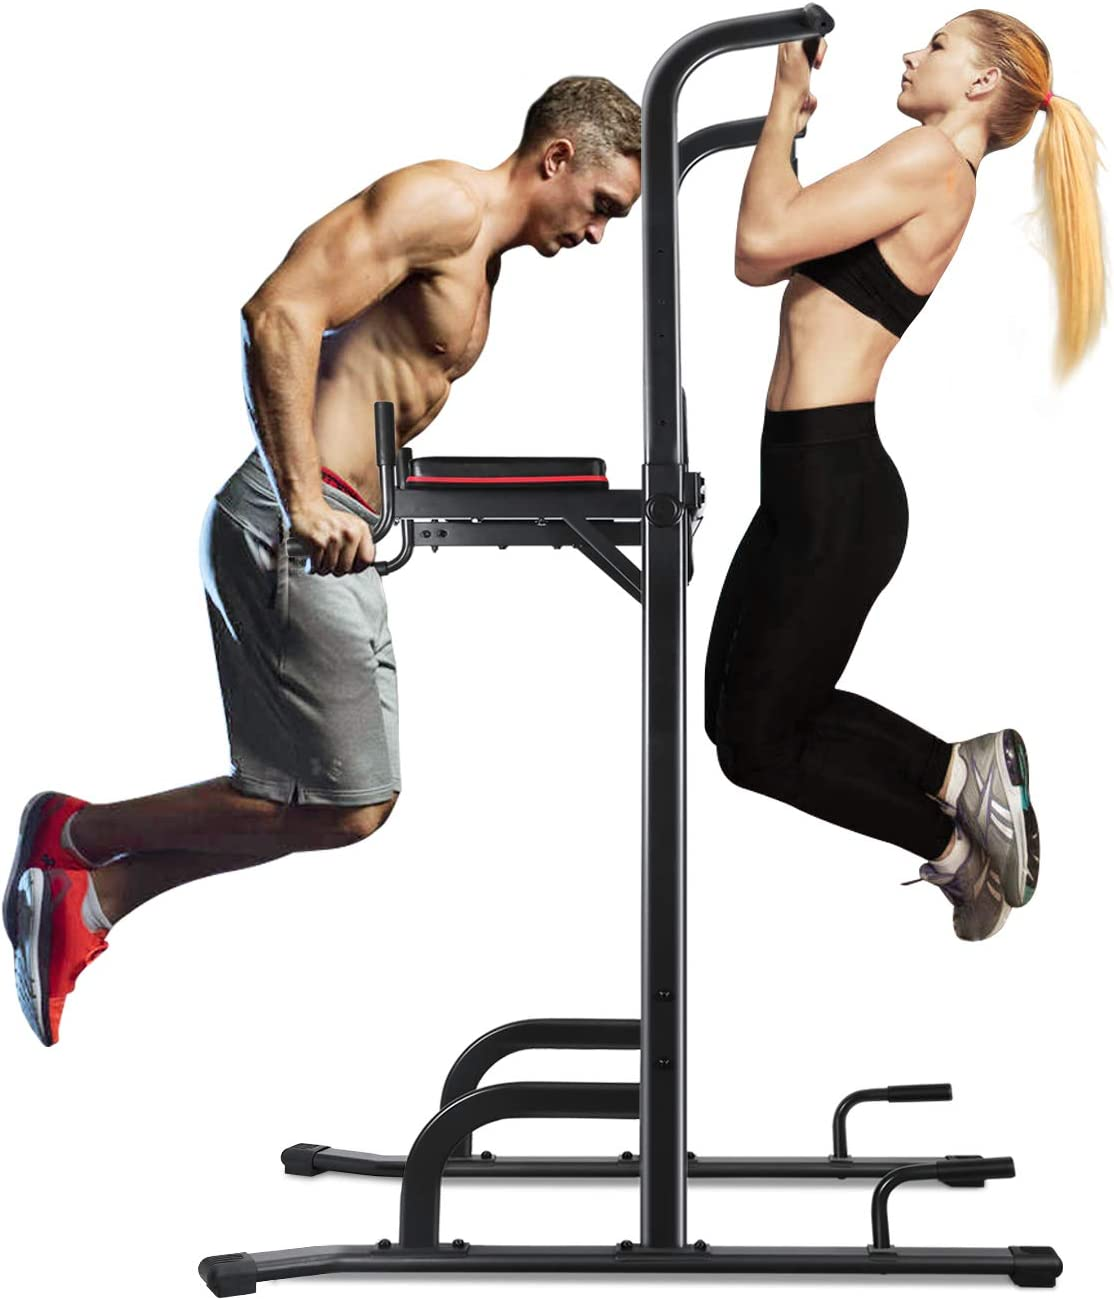 MaxKare 4 Level Adjustable Power Tower Workout Dip Stand